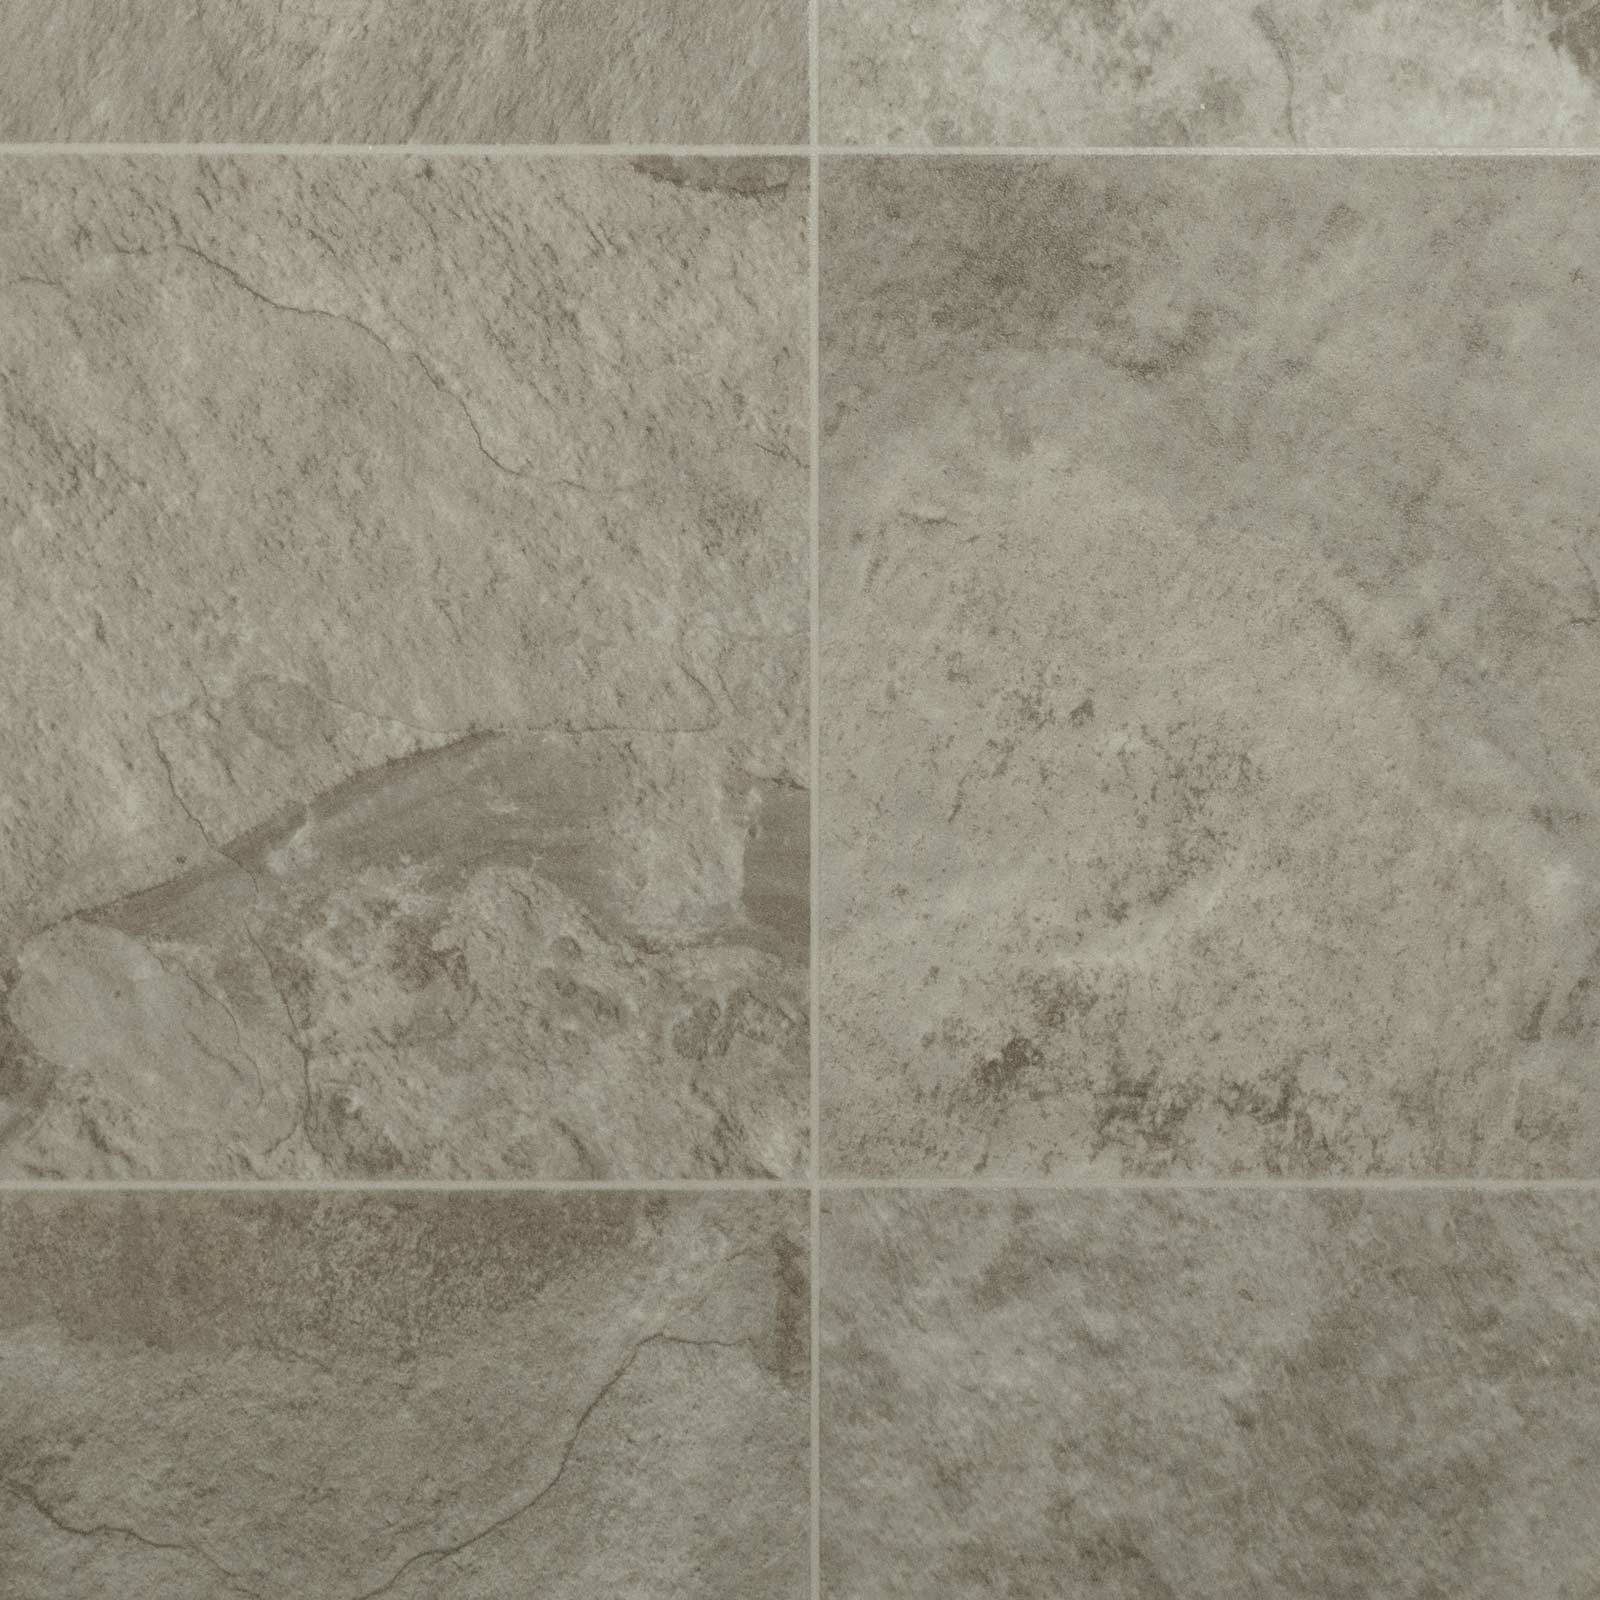 Natural Stone Tile Style Vinyl Flooring - Far